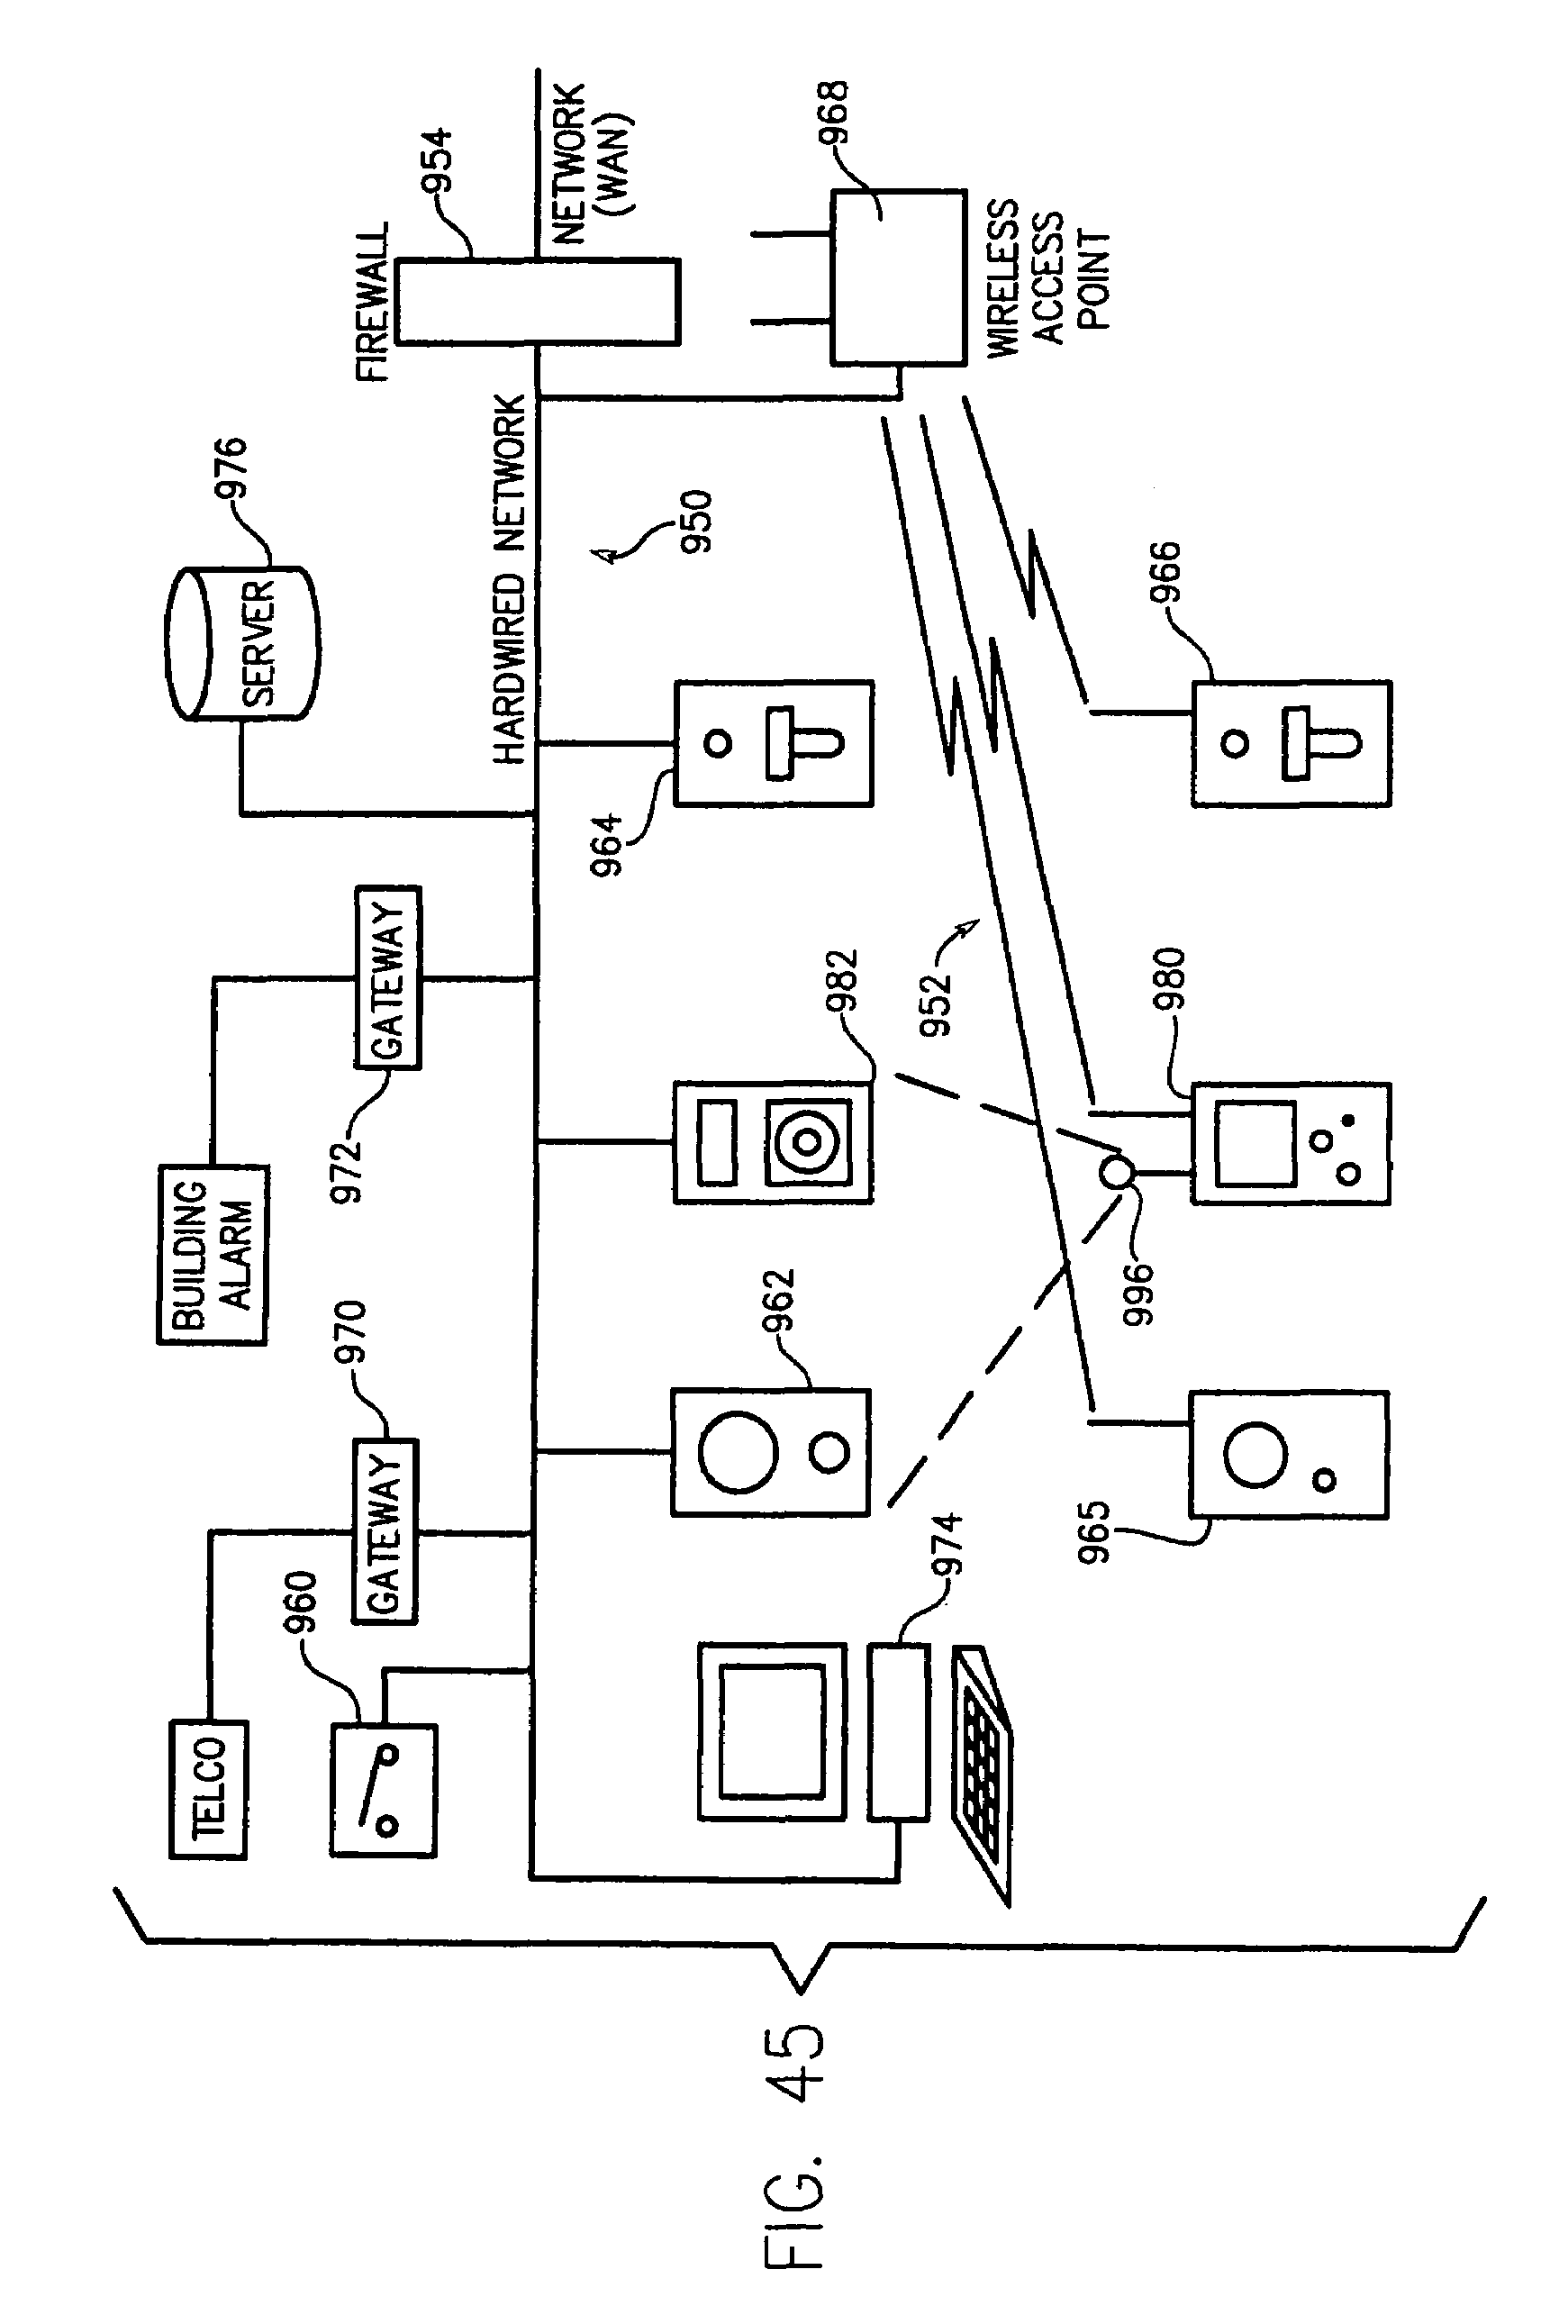 Patent Us 6970183 B1 International 966 Wiring Diagram Images